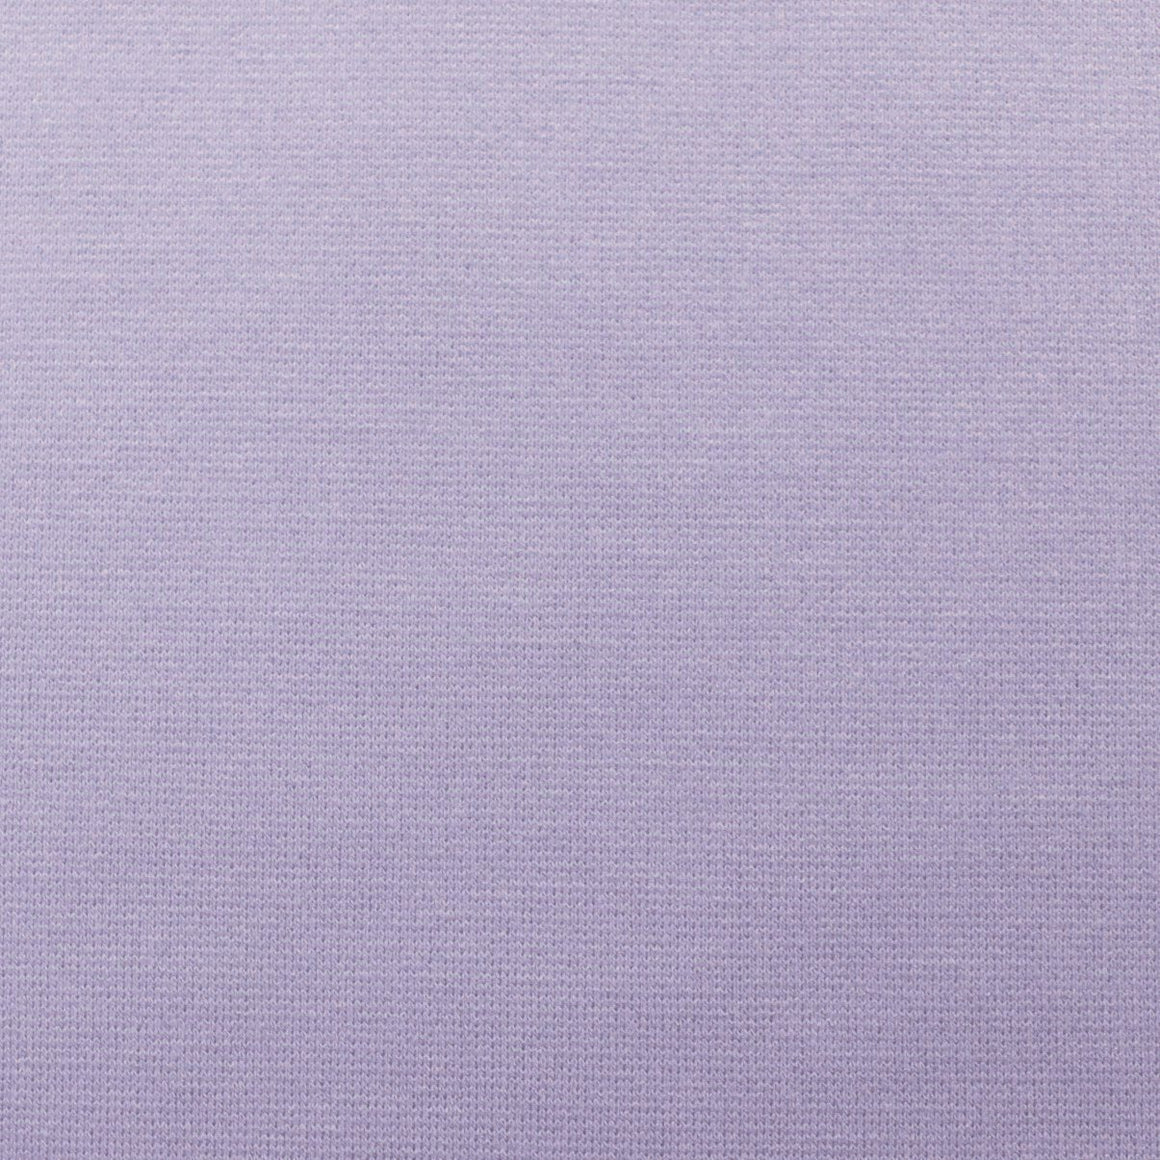 Lilac Ponte De Roma Knit Fabric - Raspberry Creek Fabrics